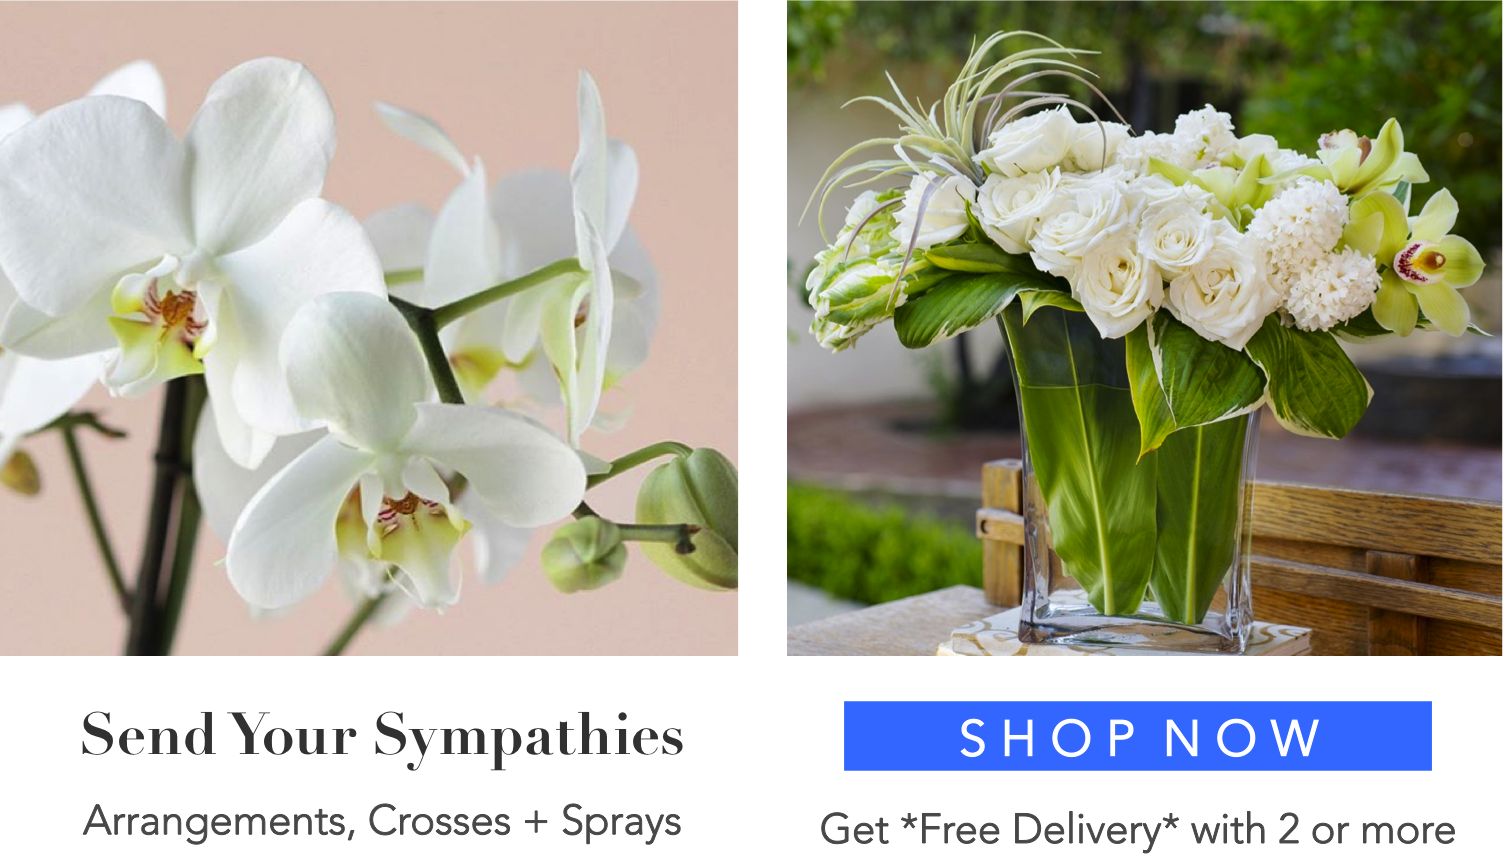 0-angies-floral-design-a-sympathy-flowers-send-gifts-79912-handcrafted-gifts-same-day-delivery-roses-flowershop-el-paso-texas-79912-shop-online-flowers-florist-best-florist.png